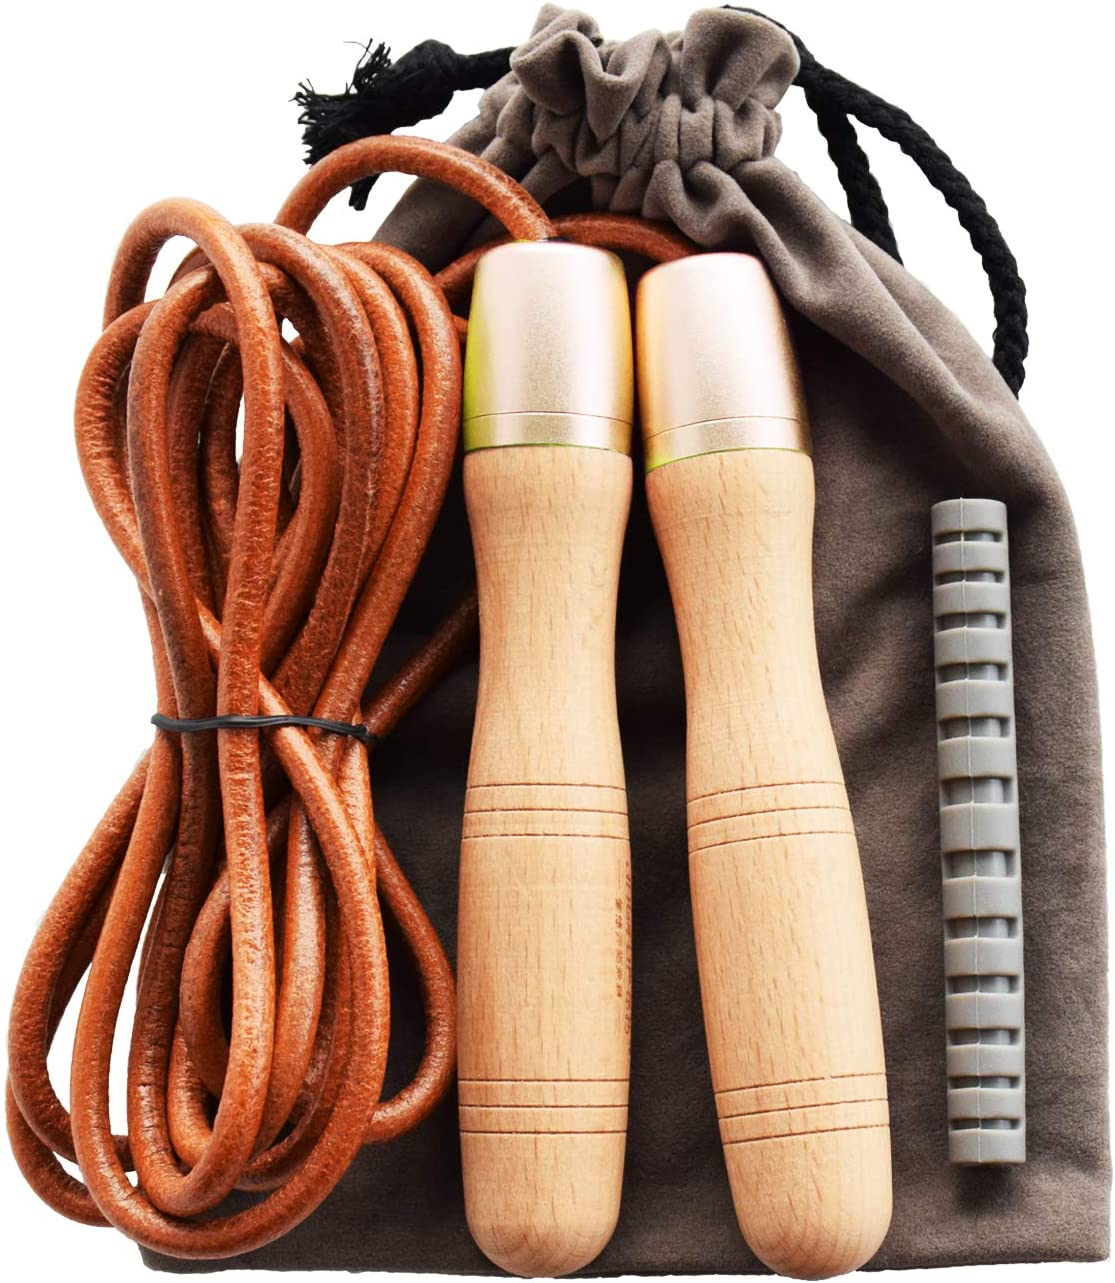 Leather Skipping Rope Fitness Gym Training Boxing Workout Jump Exercise Handle